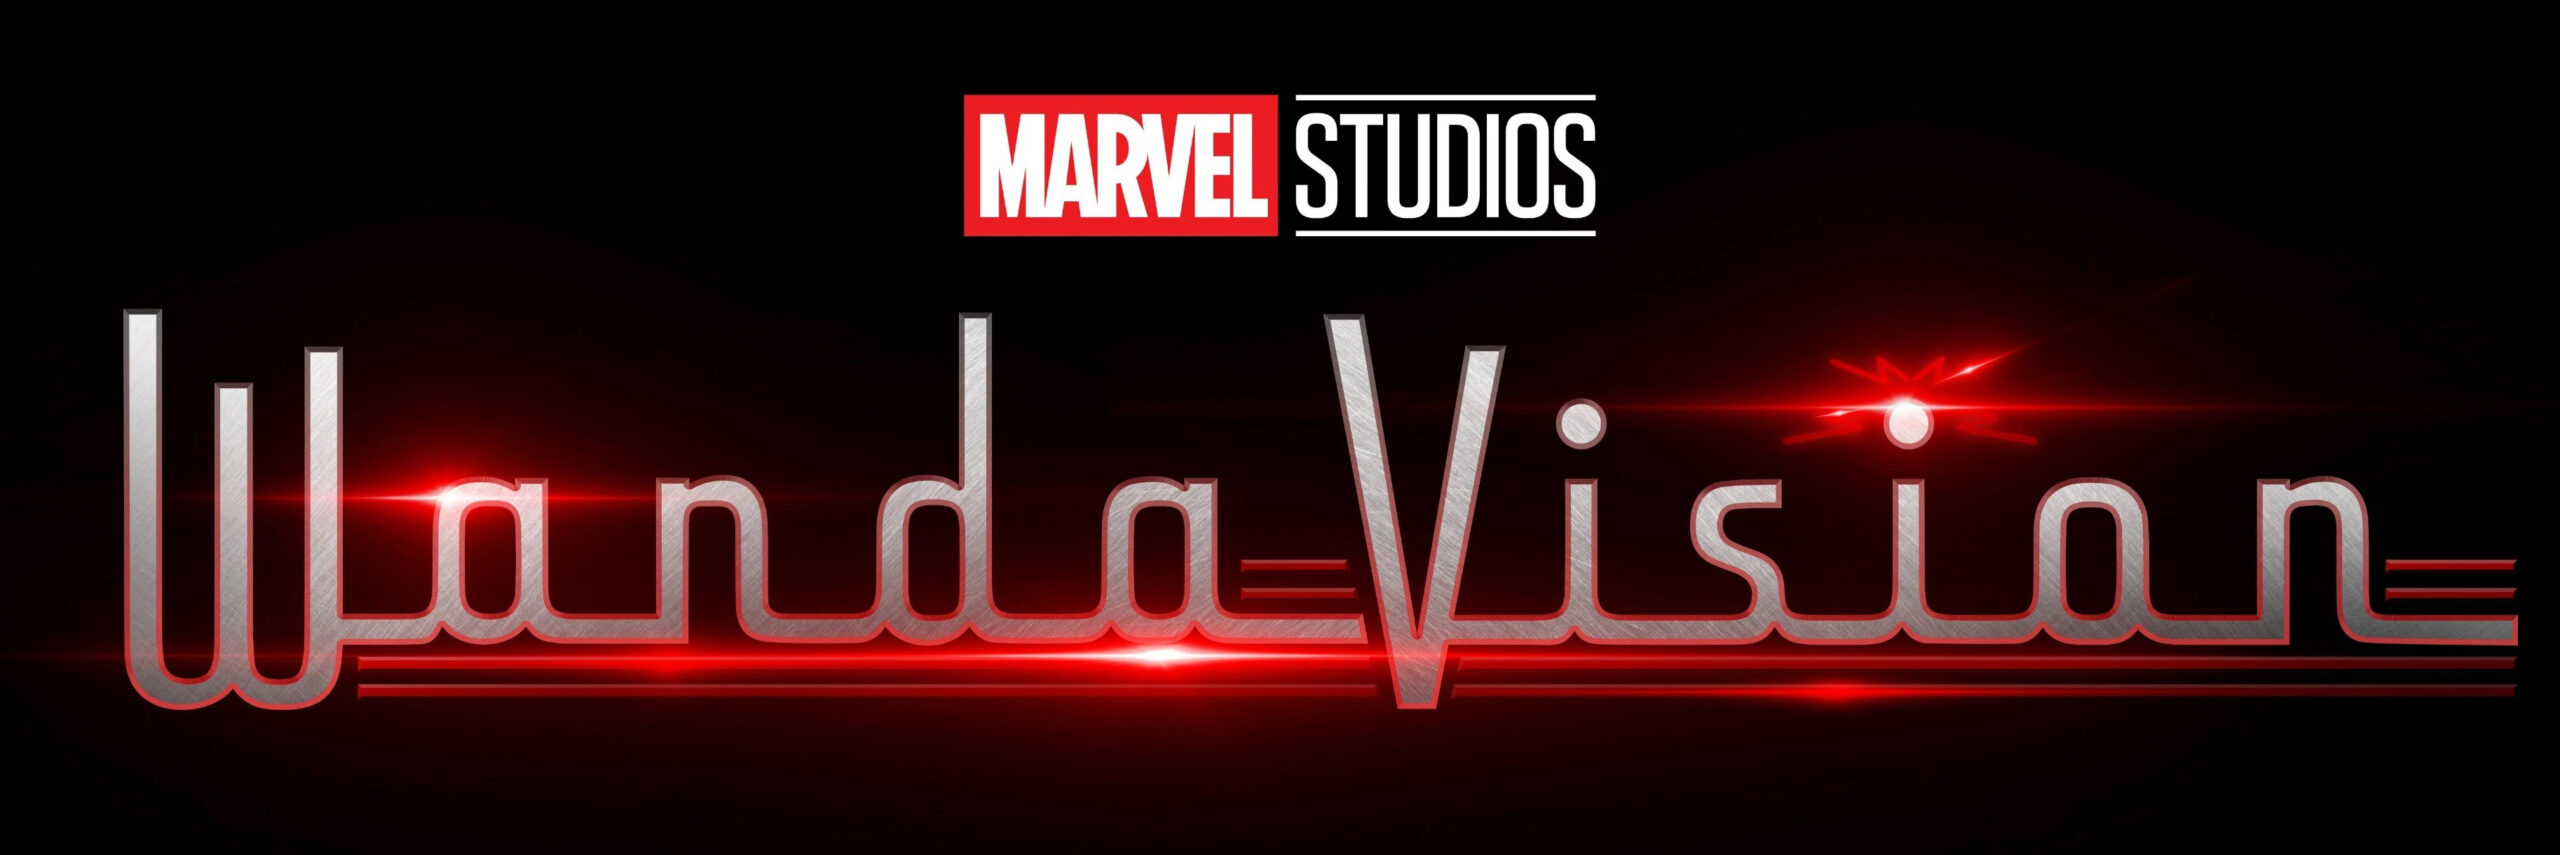 WandaVision. Know your marvel movies. Characters and Thoughts.